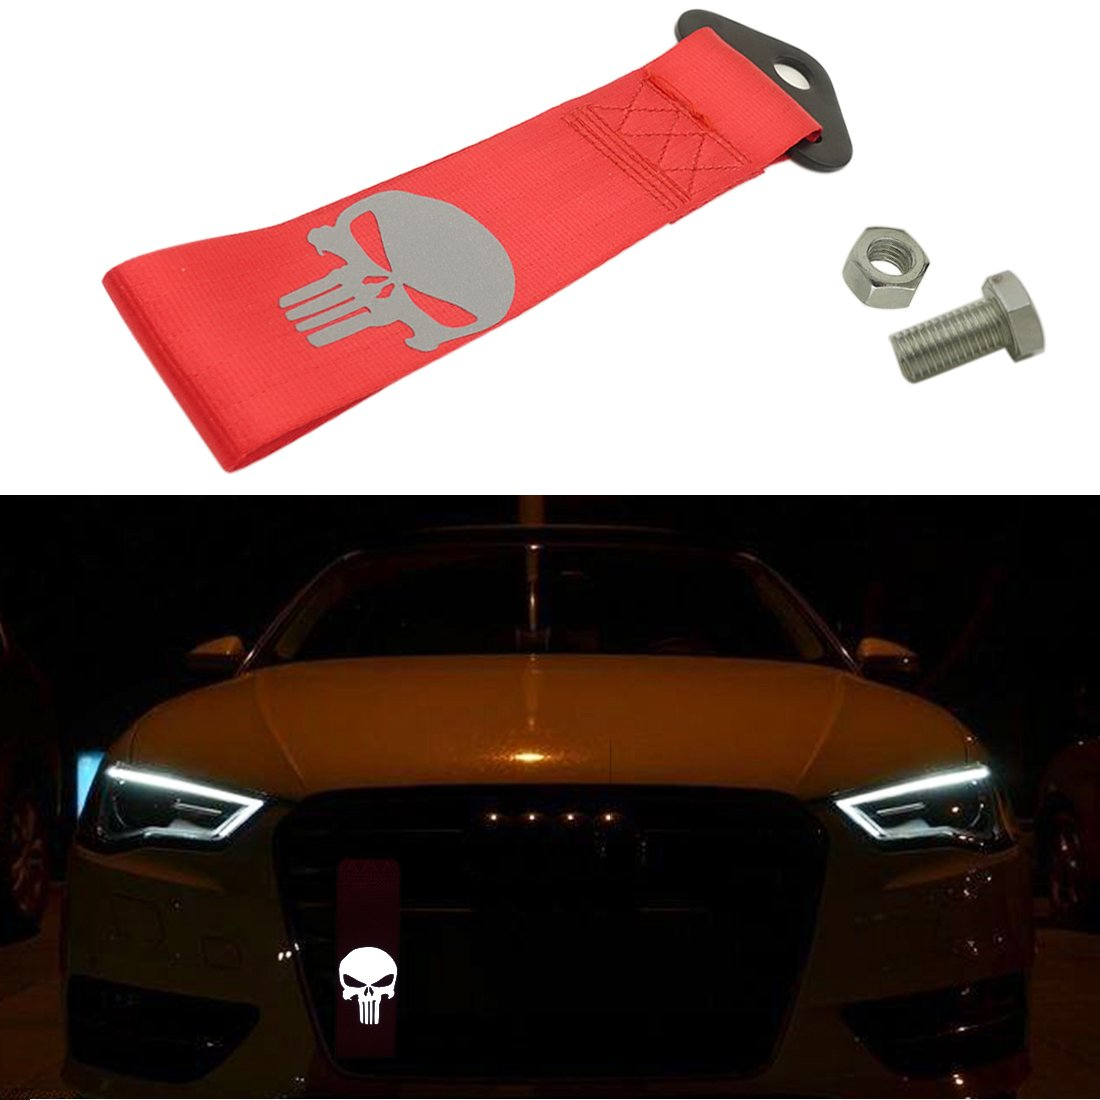 Kaizen Reflective Universal Skull Racing Tow Strap JDM Towing Strap Punisher Bumper Towing Set for Front Or Rear Bumper Towing Hook (Red) Kaizen Acc